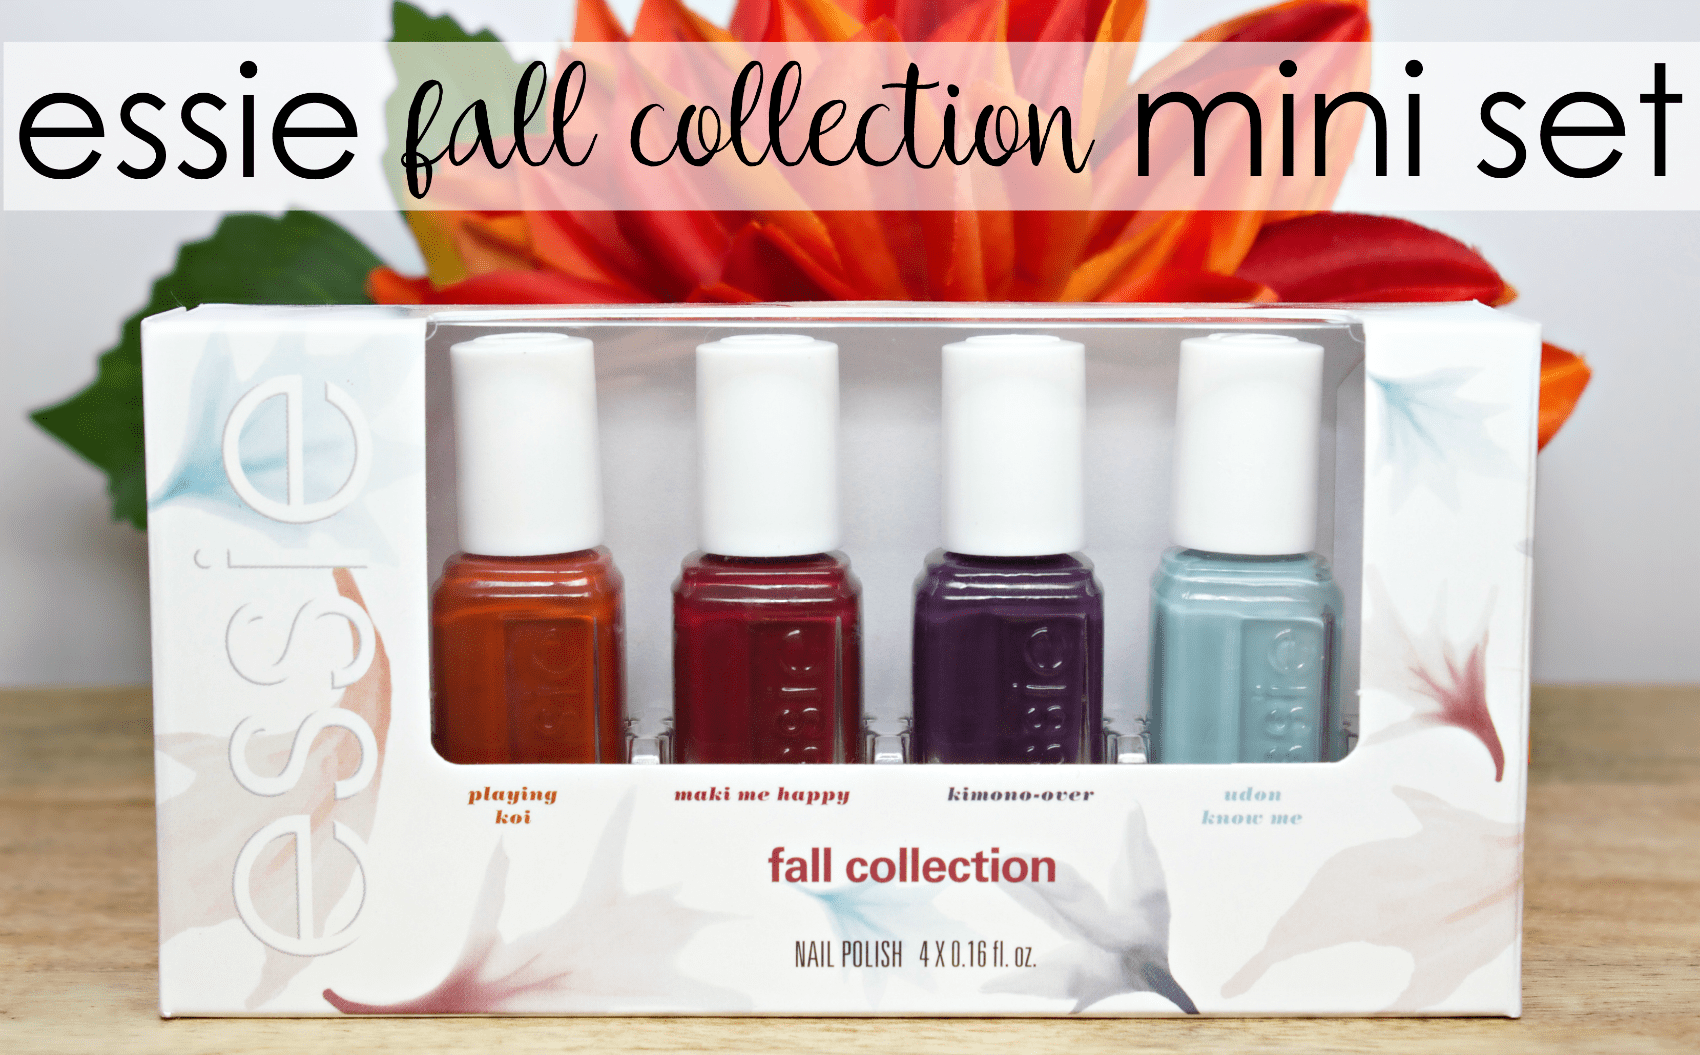 Essie 2016 Fall Collection Mini Set! - The Feminine Files